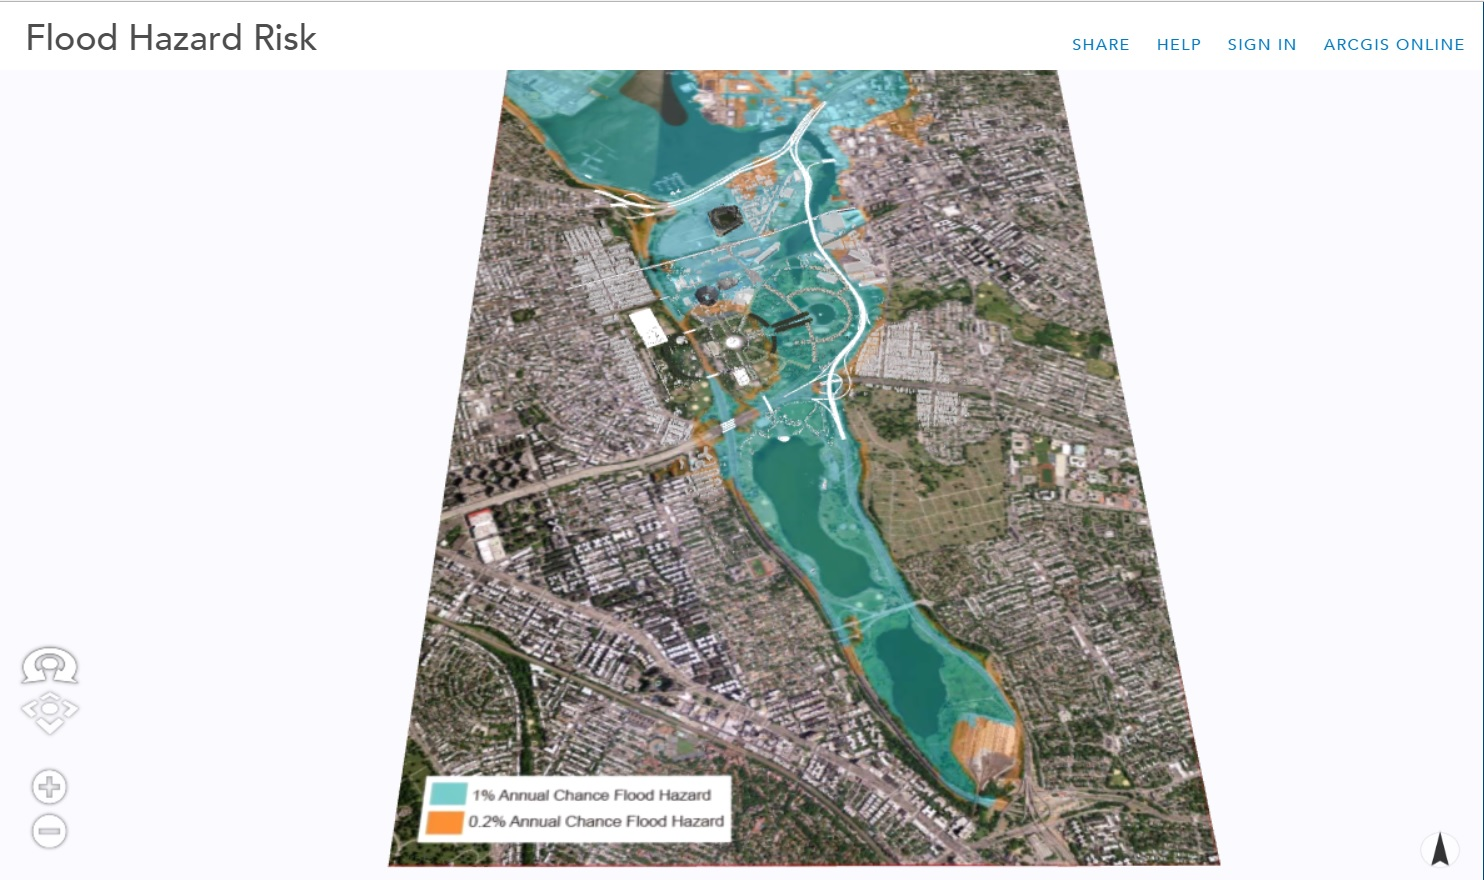 This image shows Flood Hazard Risk overlaid on a 3D model and aerial of the site. Select image to view in CityEngine web viewer.